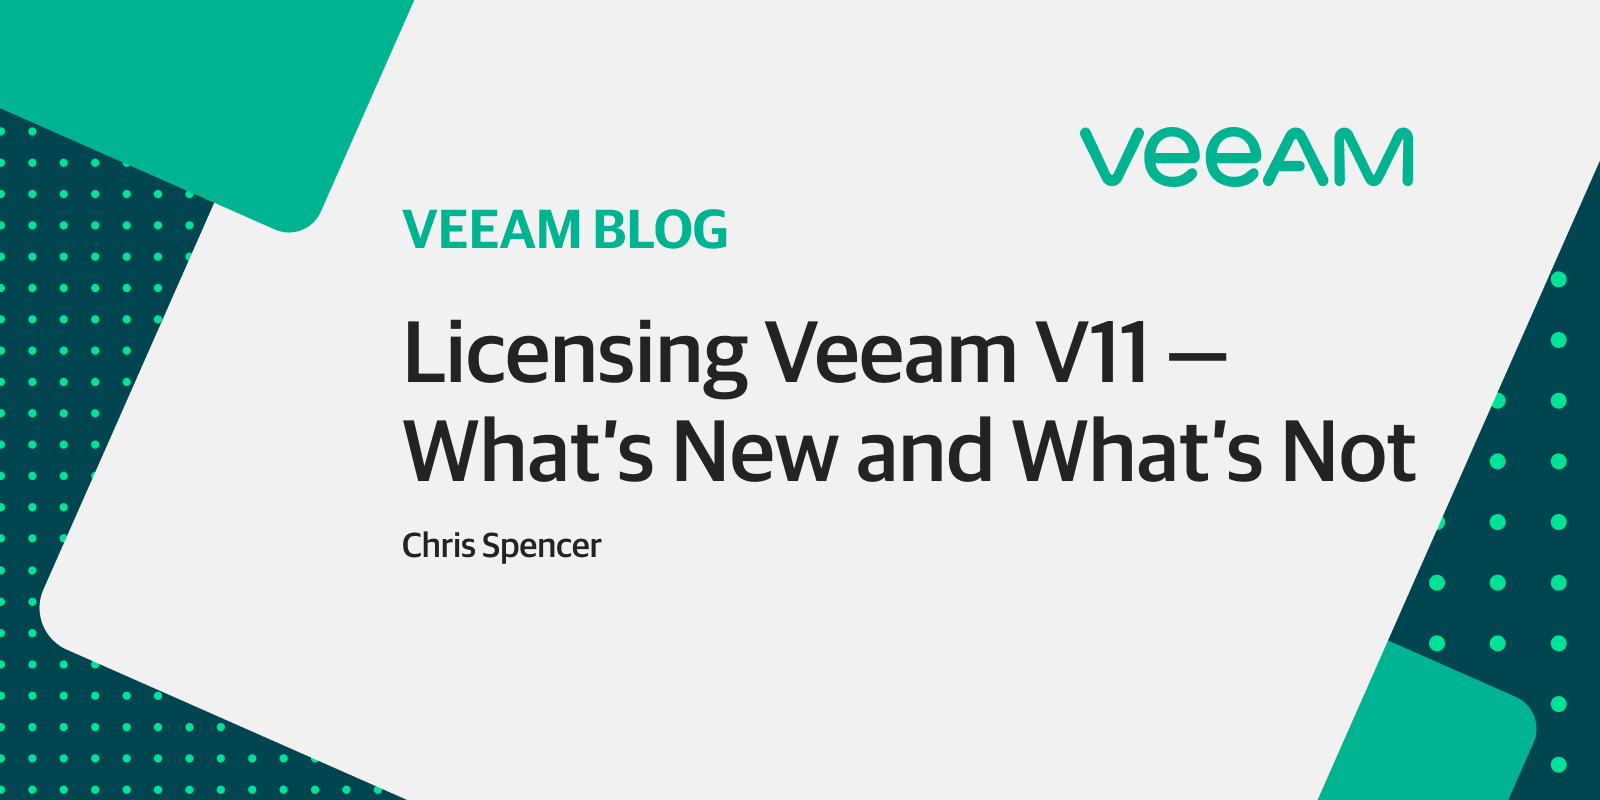 Licensing Veeam V11: What's new and what's not